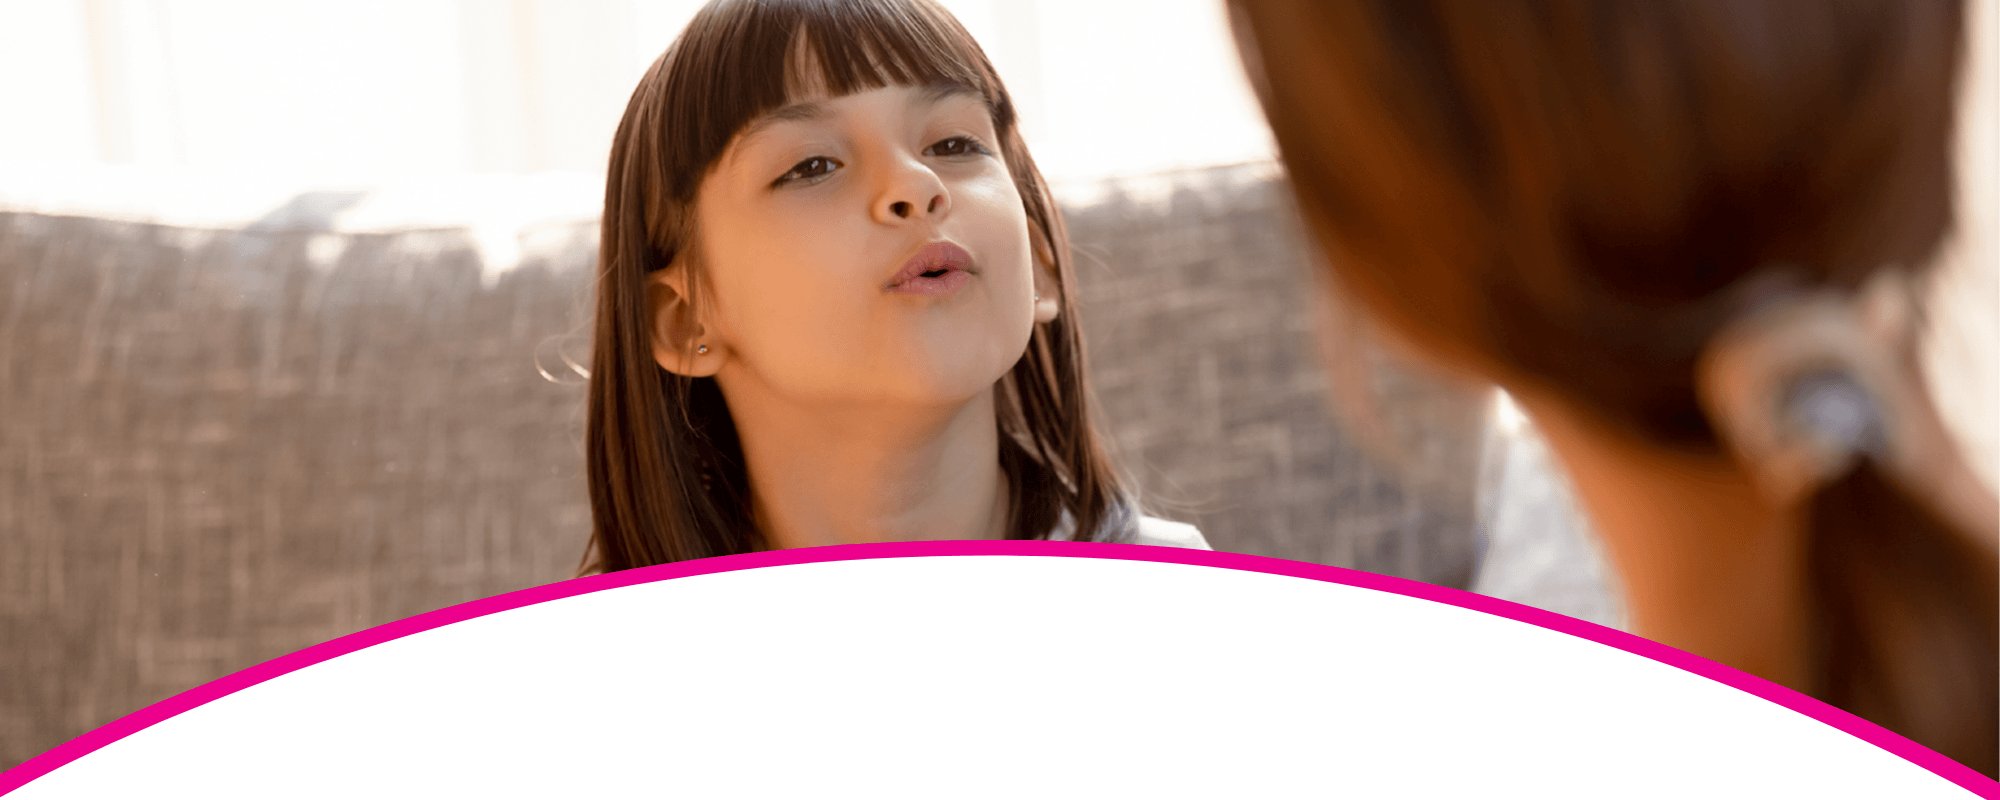 Speech therapy for stutter